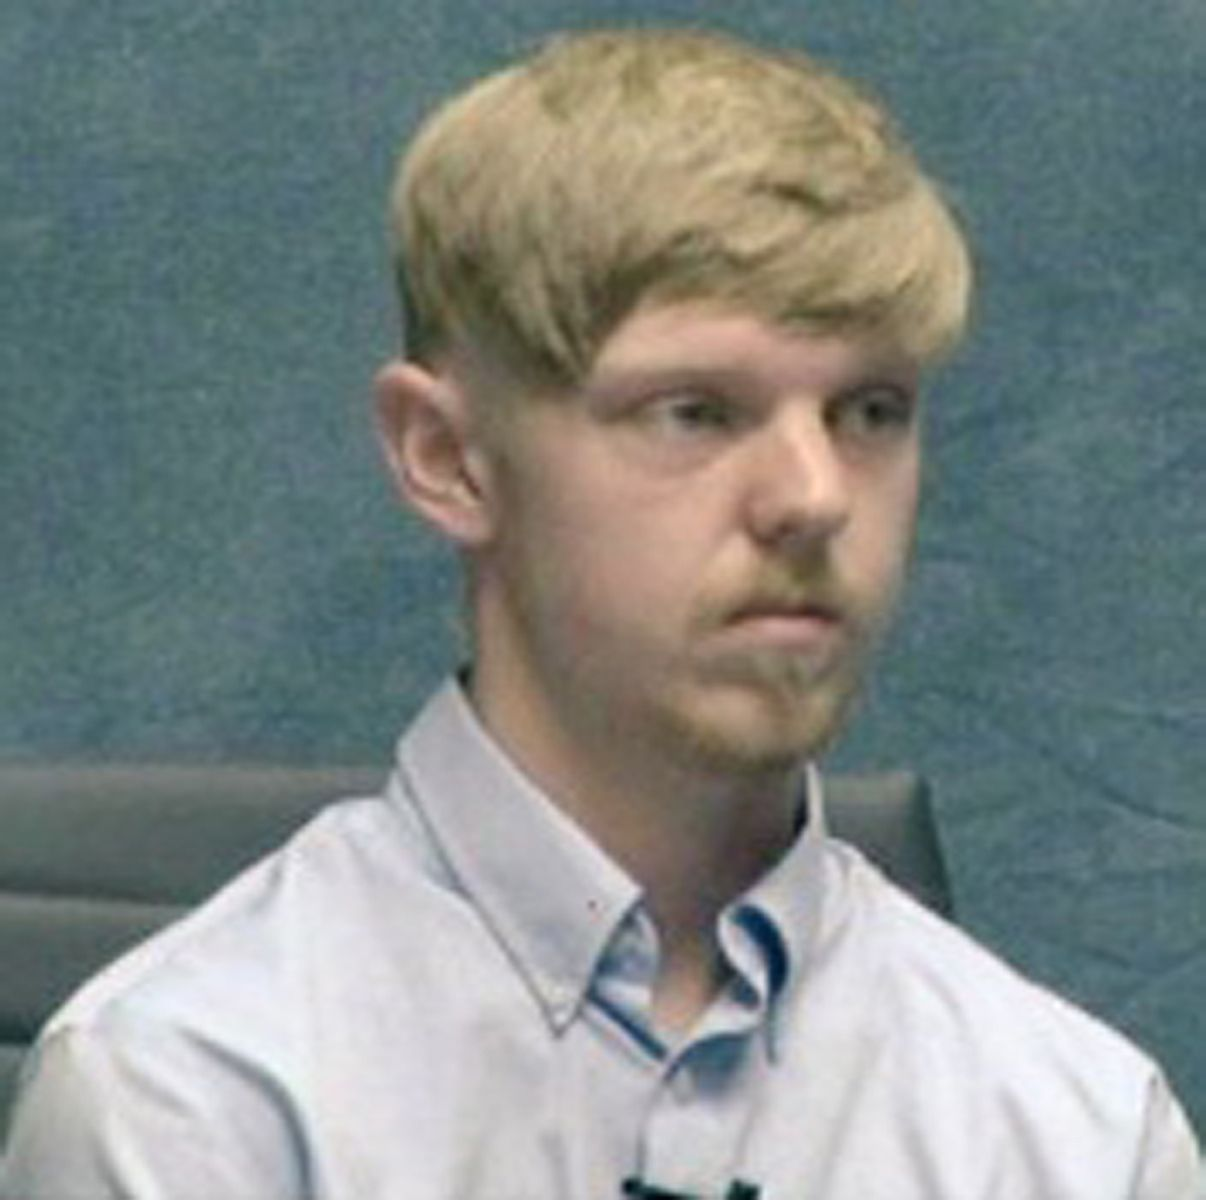 01_28_ethan_couch_01